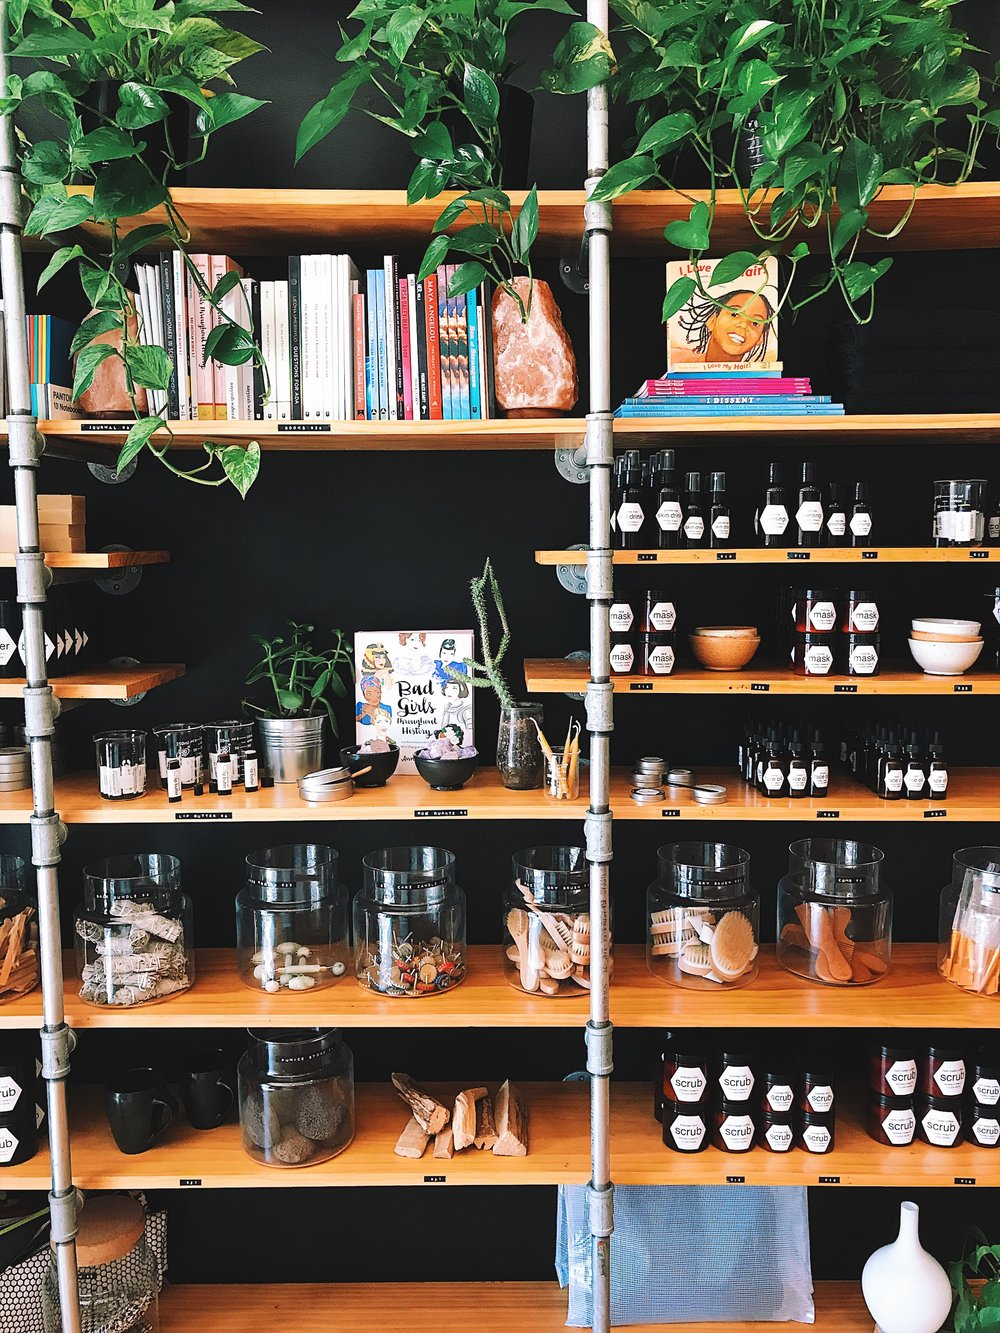 The self care goodies at Scratch Goods. Palo Santo, dry brushes, poetry, and foot scrubs. YAS.